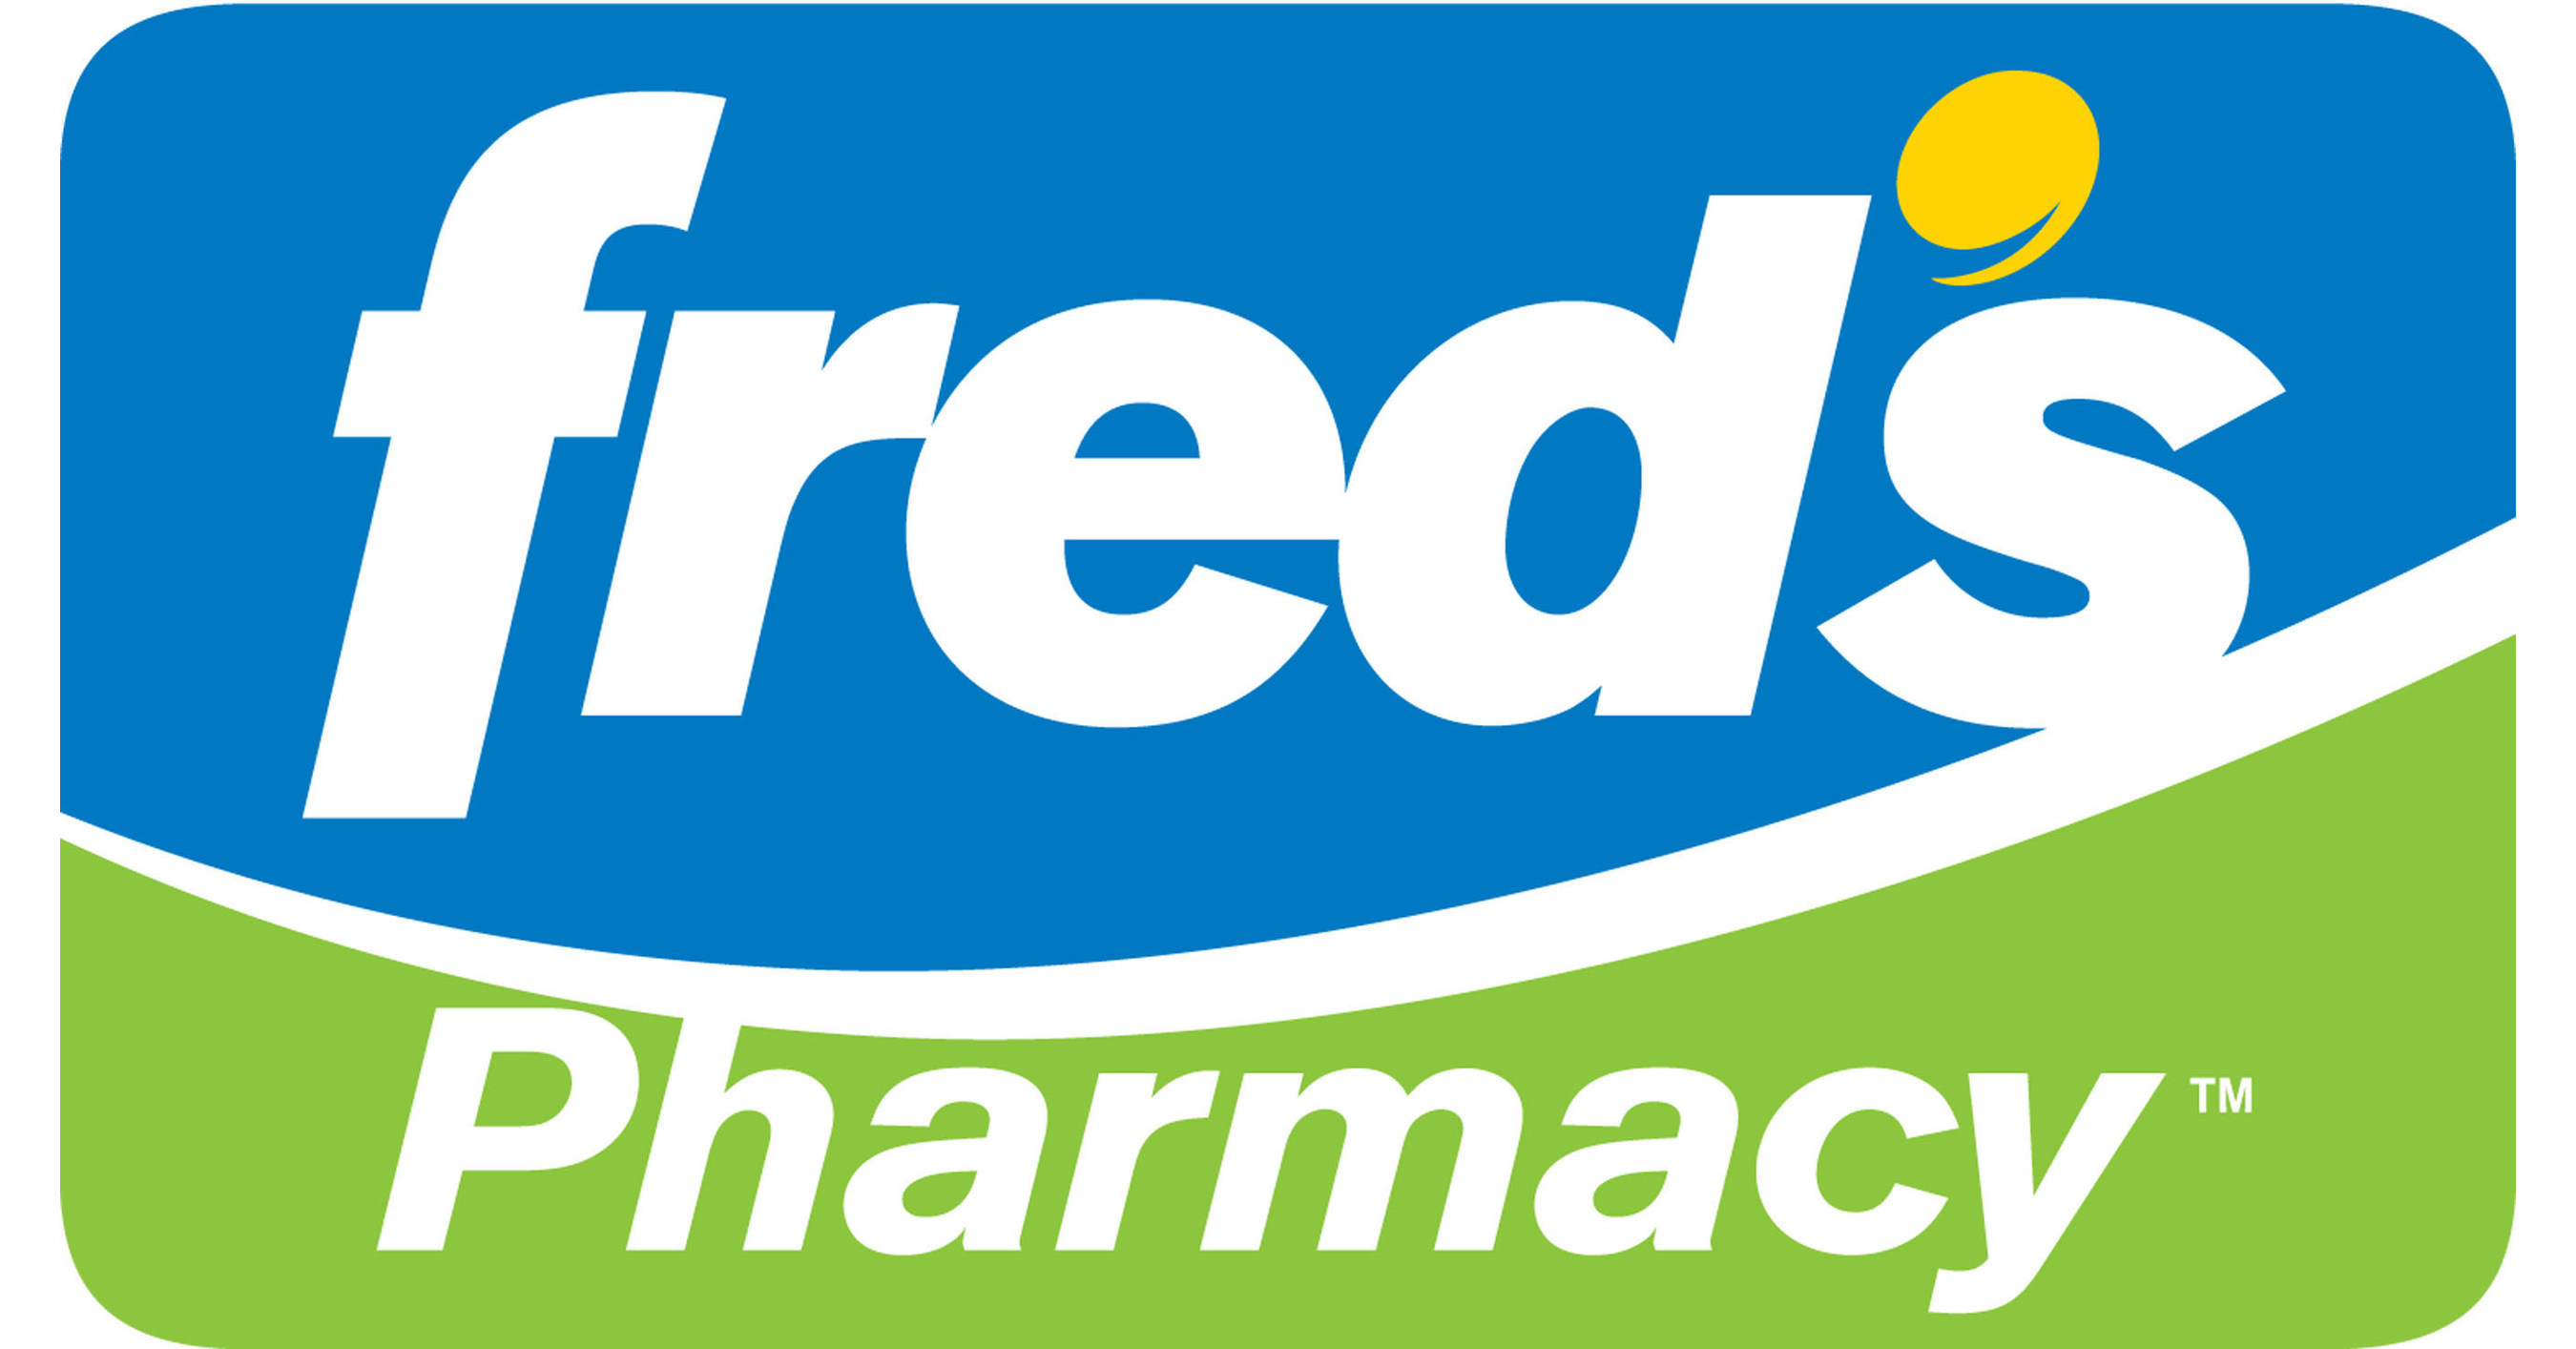 Fred S Pharmacy Launches Digital Coupons And New Mobile